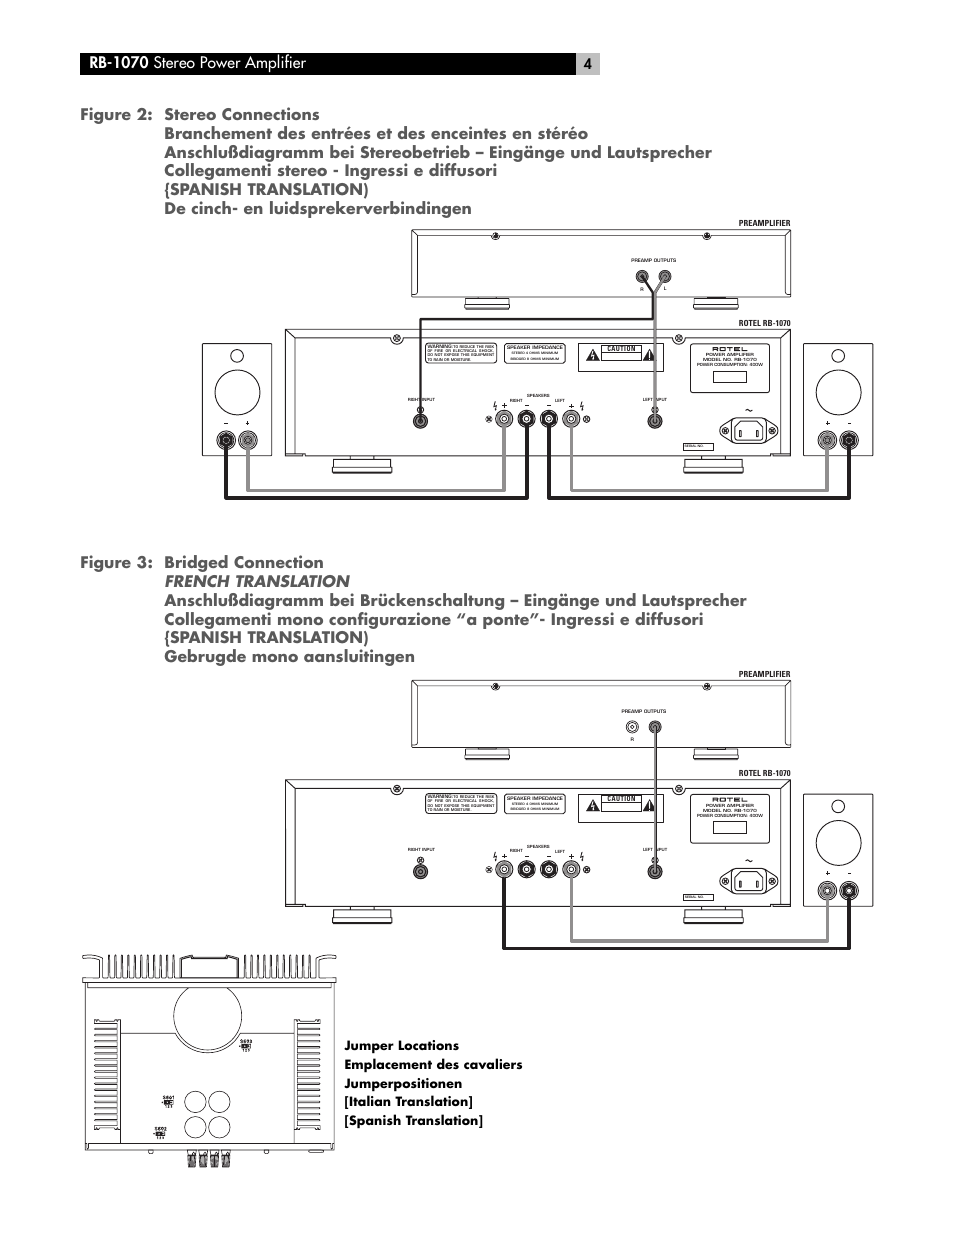 Rb-1070 stereo power amplifier   ROTEL RB-1070 User Manual   Page 4 / 36